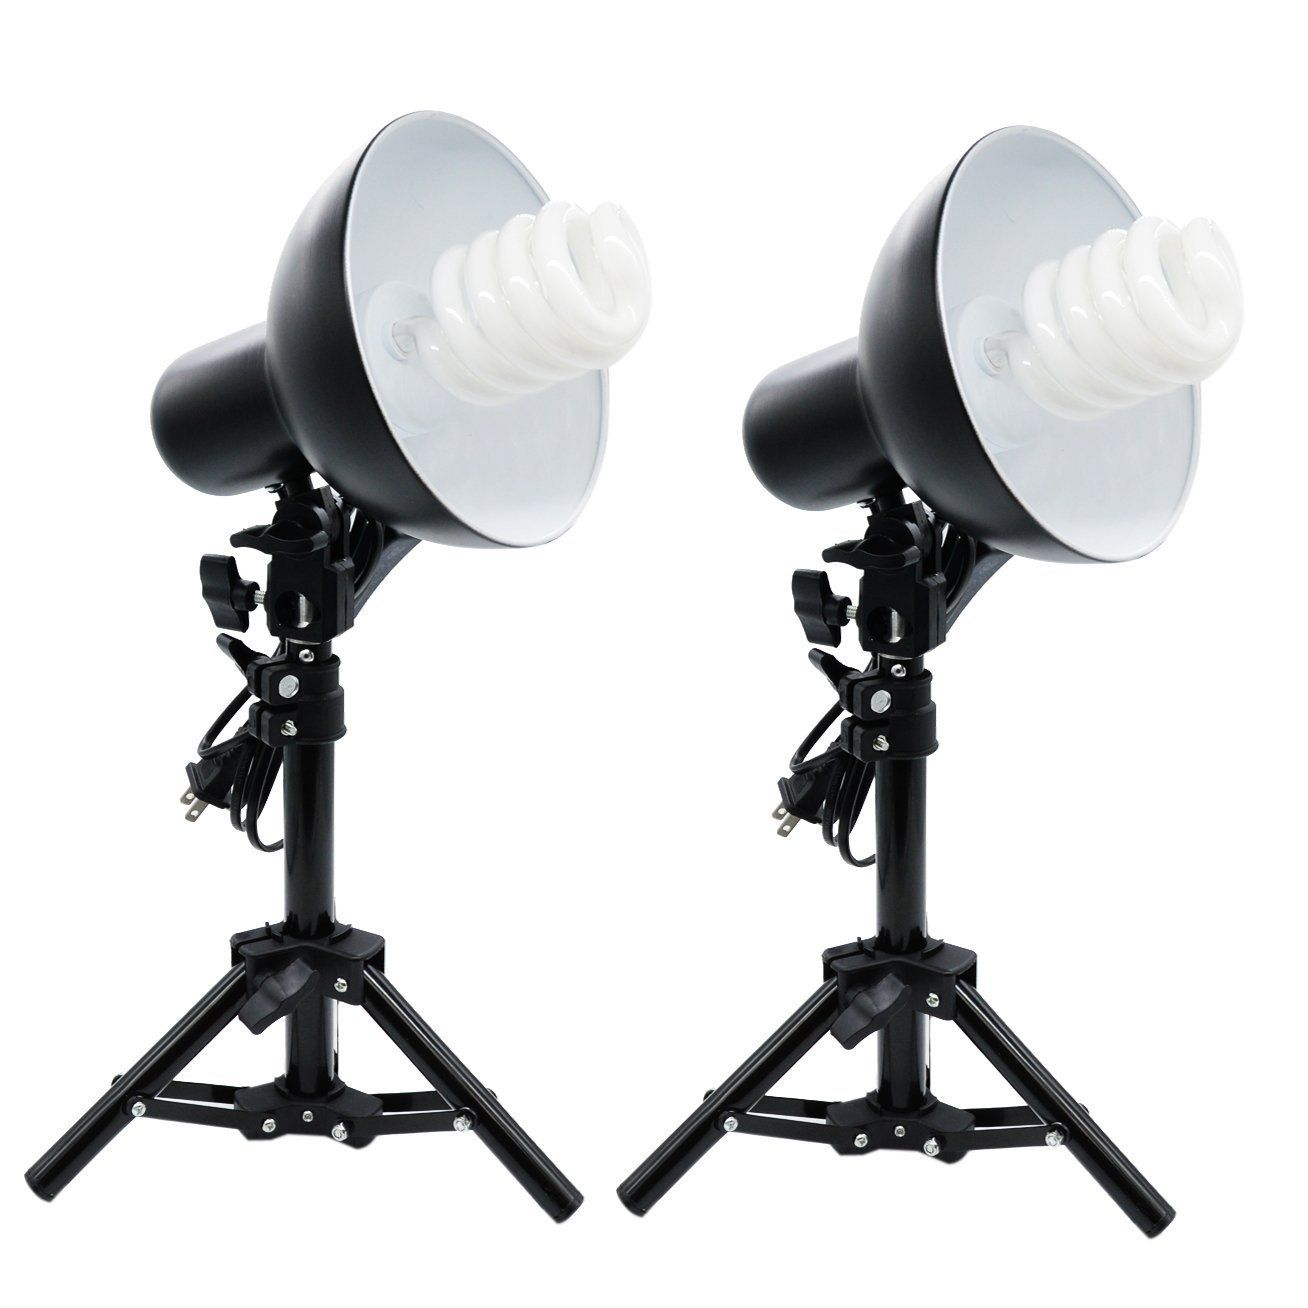 2x Metal Product Photography YouTube Video Table Top Fluorescent ... for Lamp Product Photography  113cpg